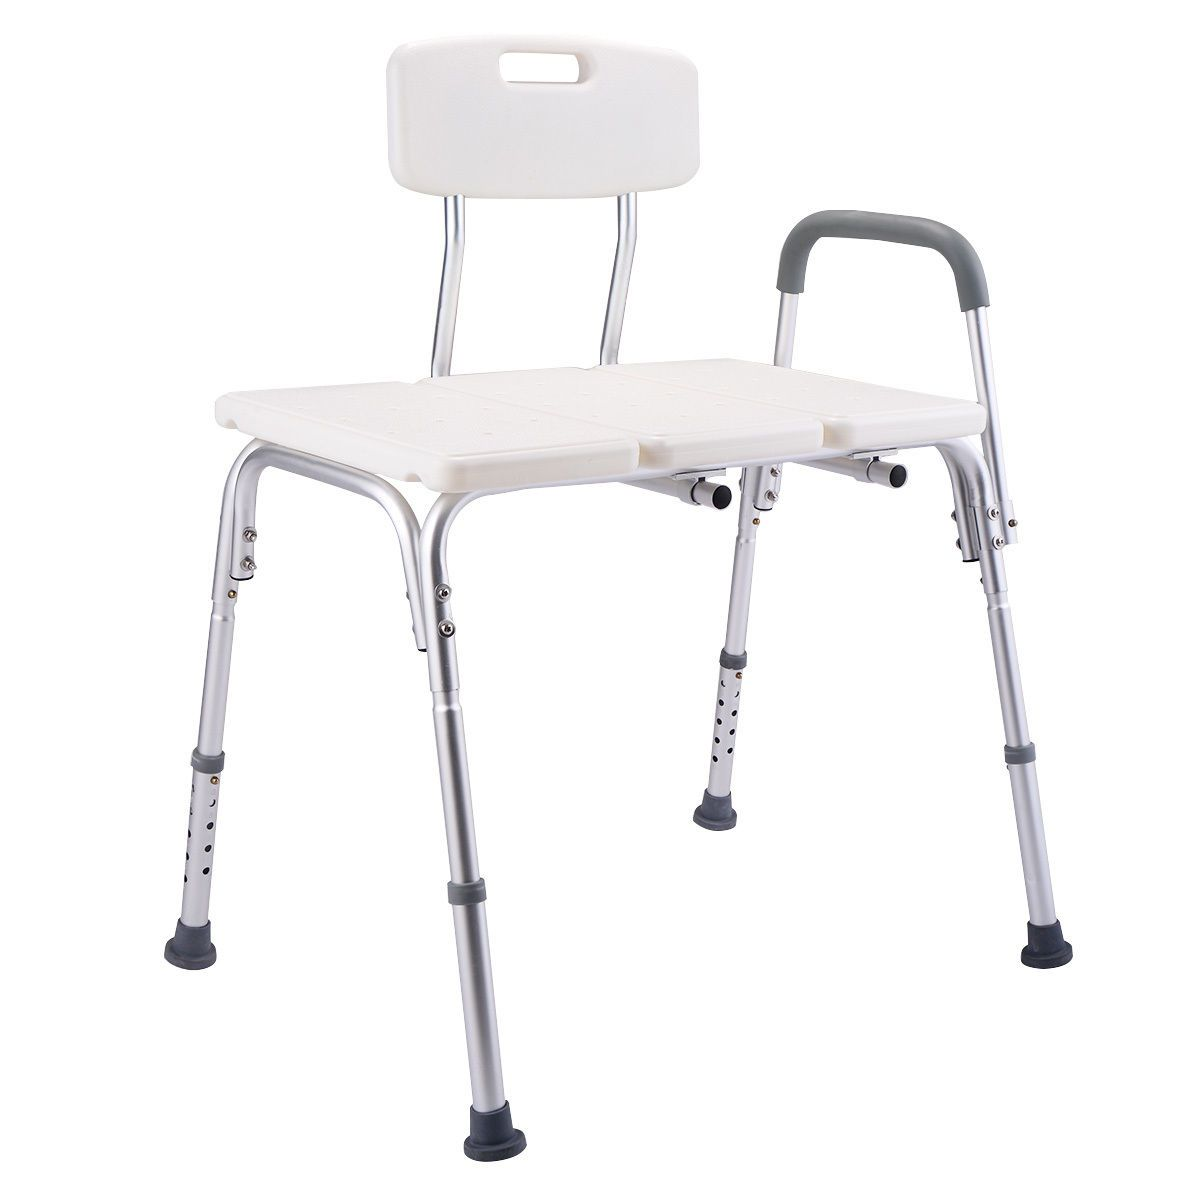 10 Height Adjustable Medical Shower Chair Bath Tub Bench Stool Seat ...